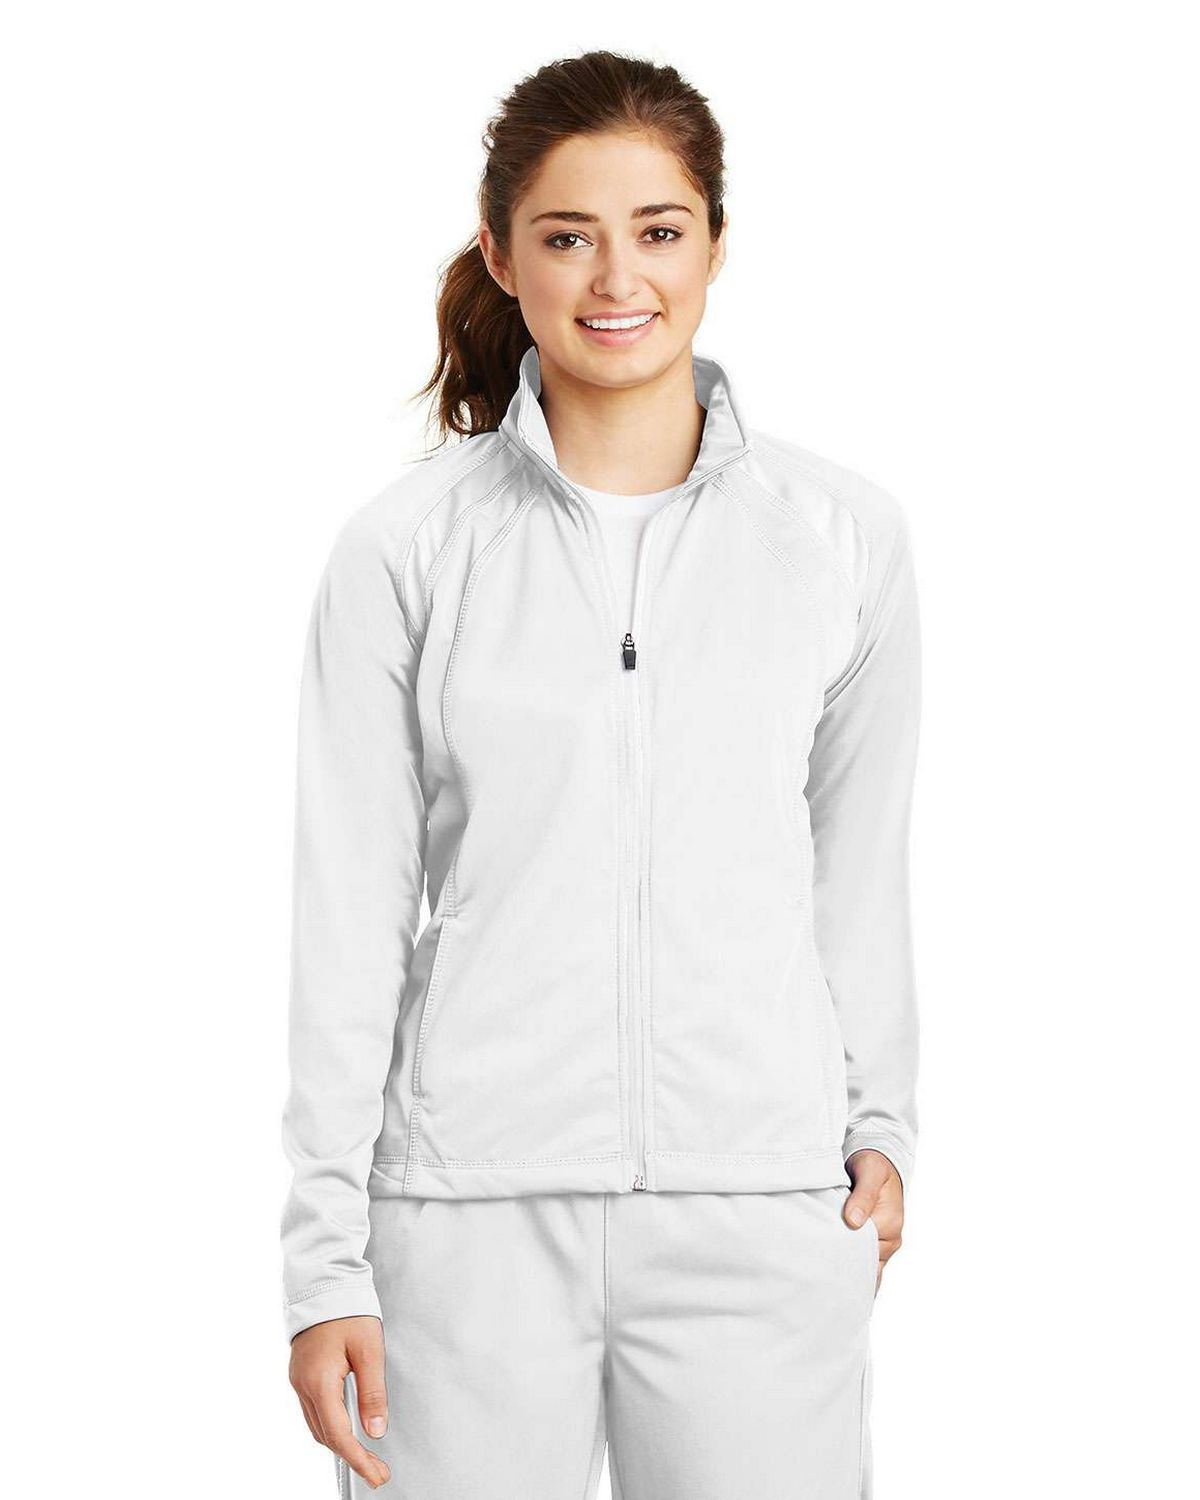 Sport Tek Lst90 Ladies Tricot Track Jacket Buy latest range of men sports jackets at myntra ? sport tek lst90 women s tricot track jacket